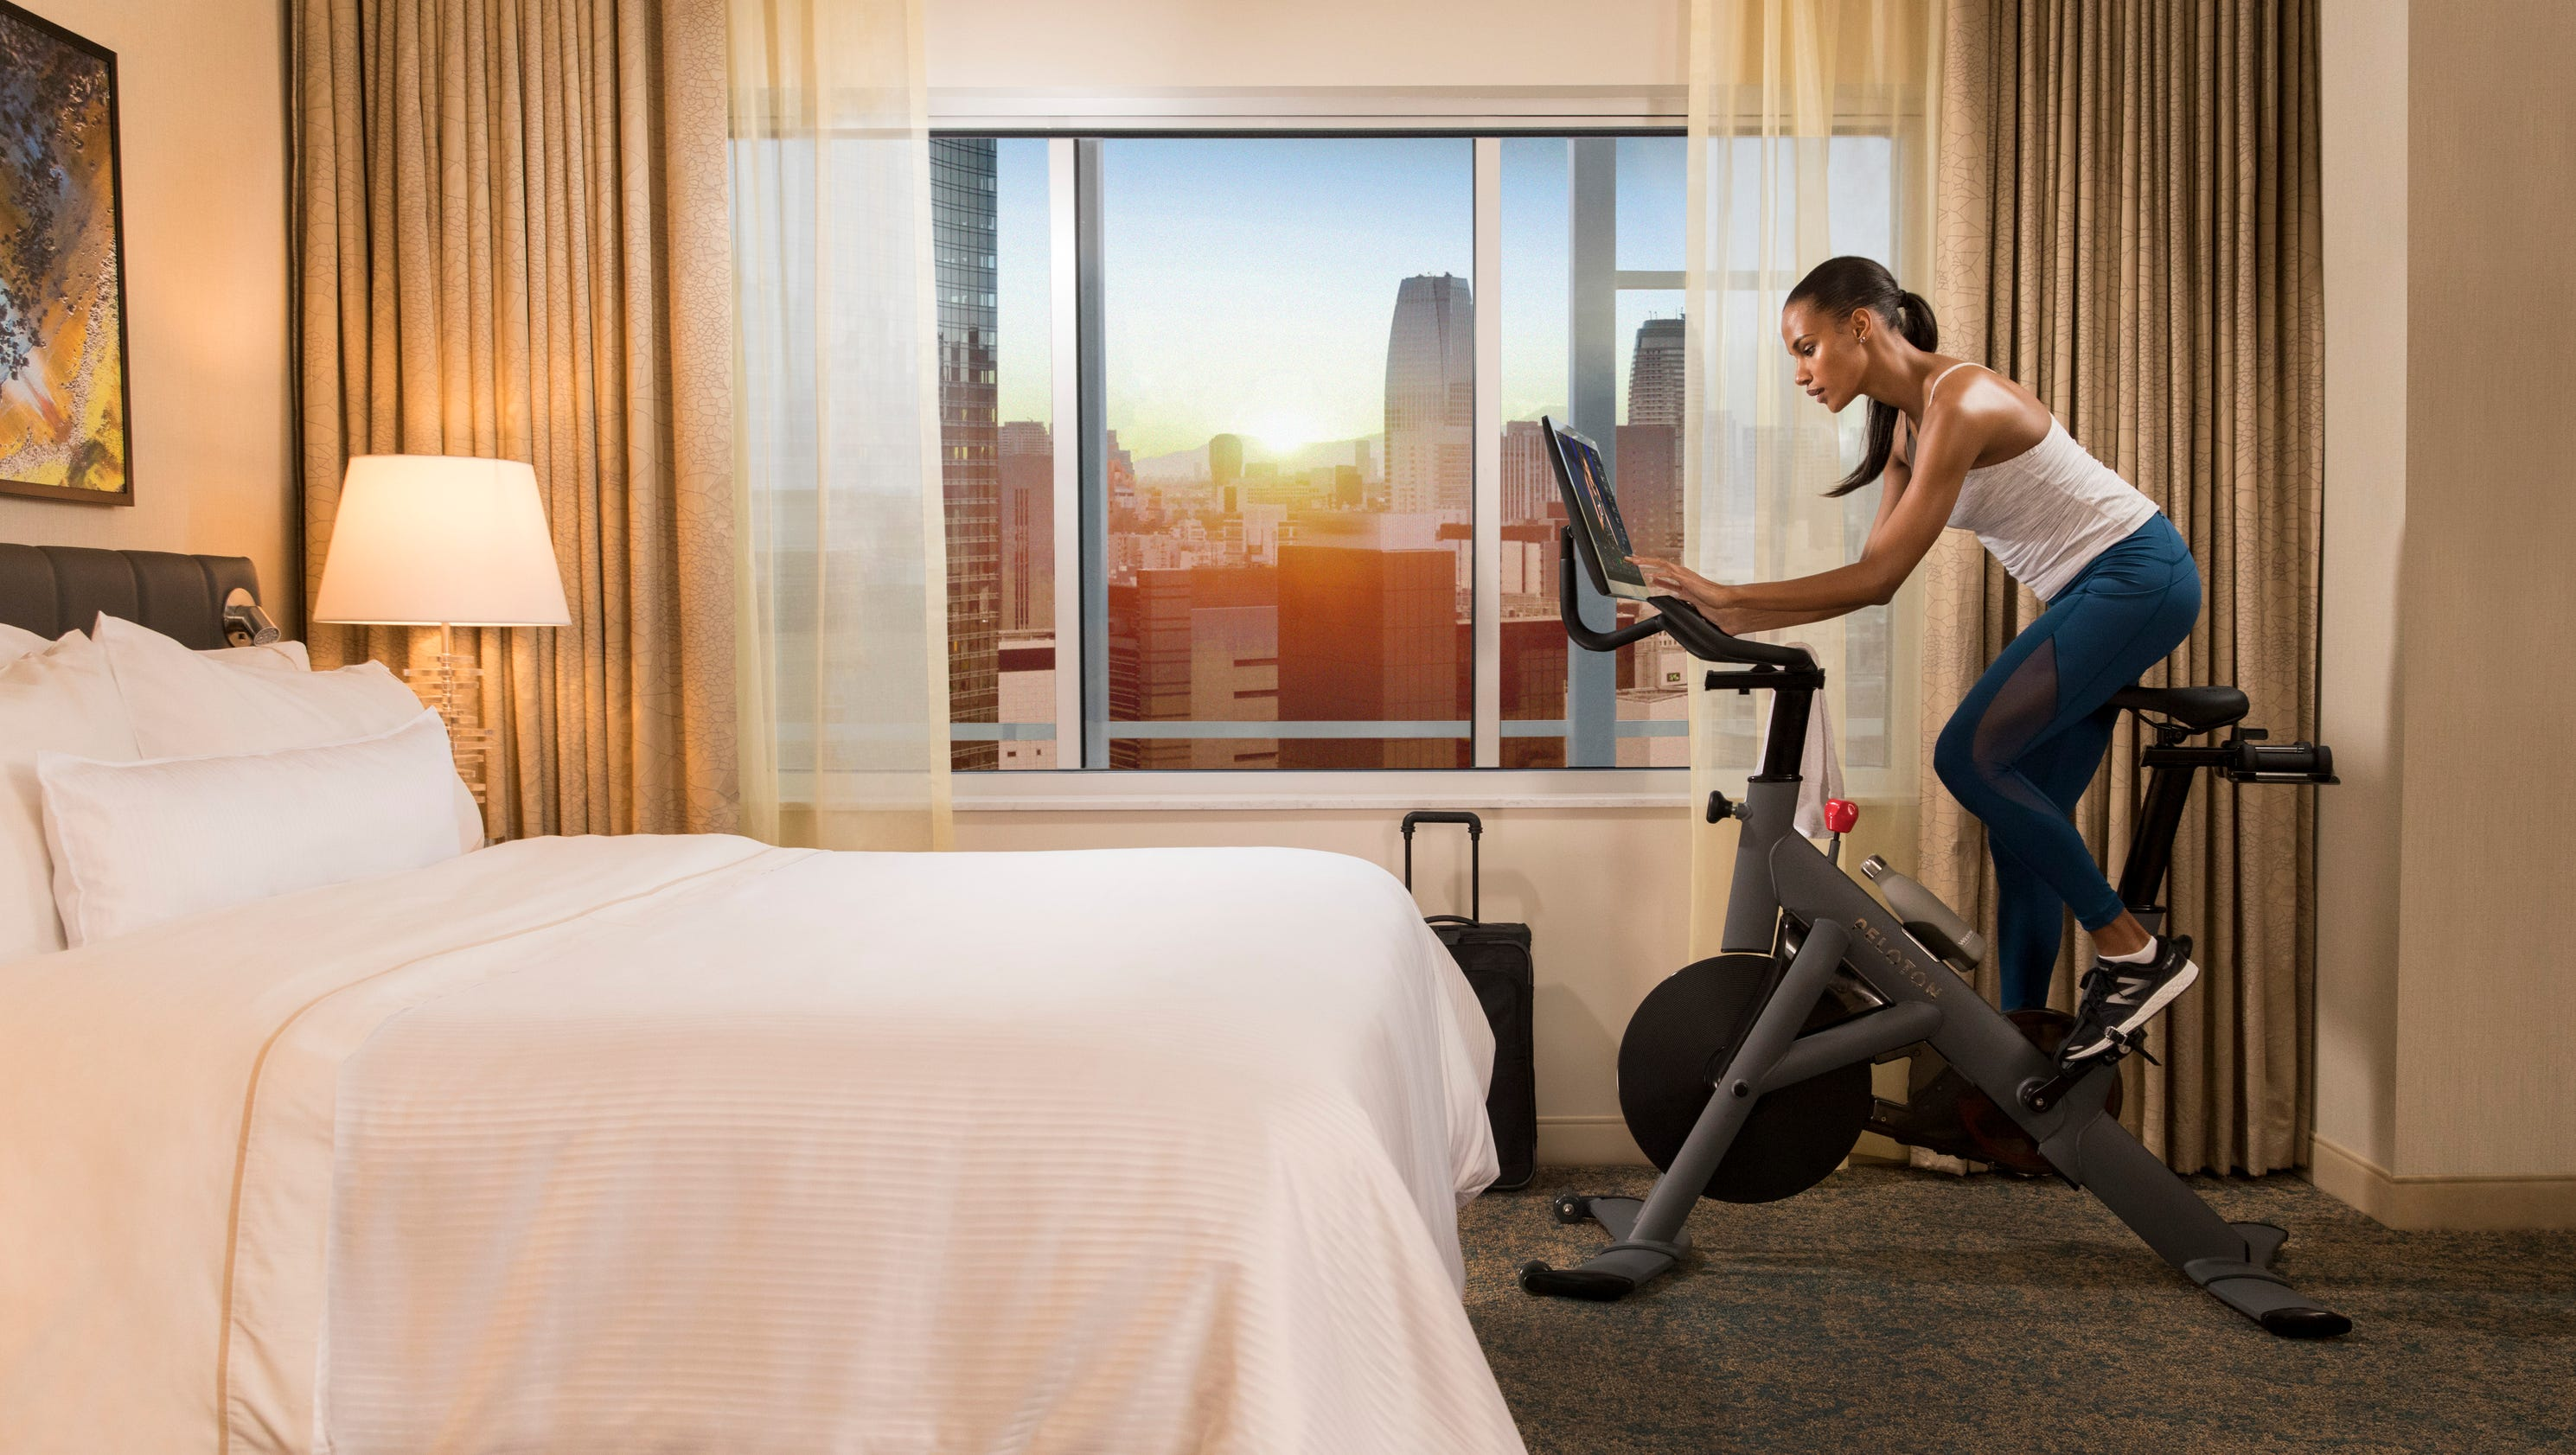 workout amenity peloton bikes in hotel rooms. Black Bedroom Furniture Sets. Home Design Ideas